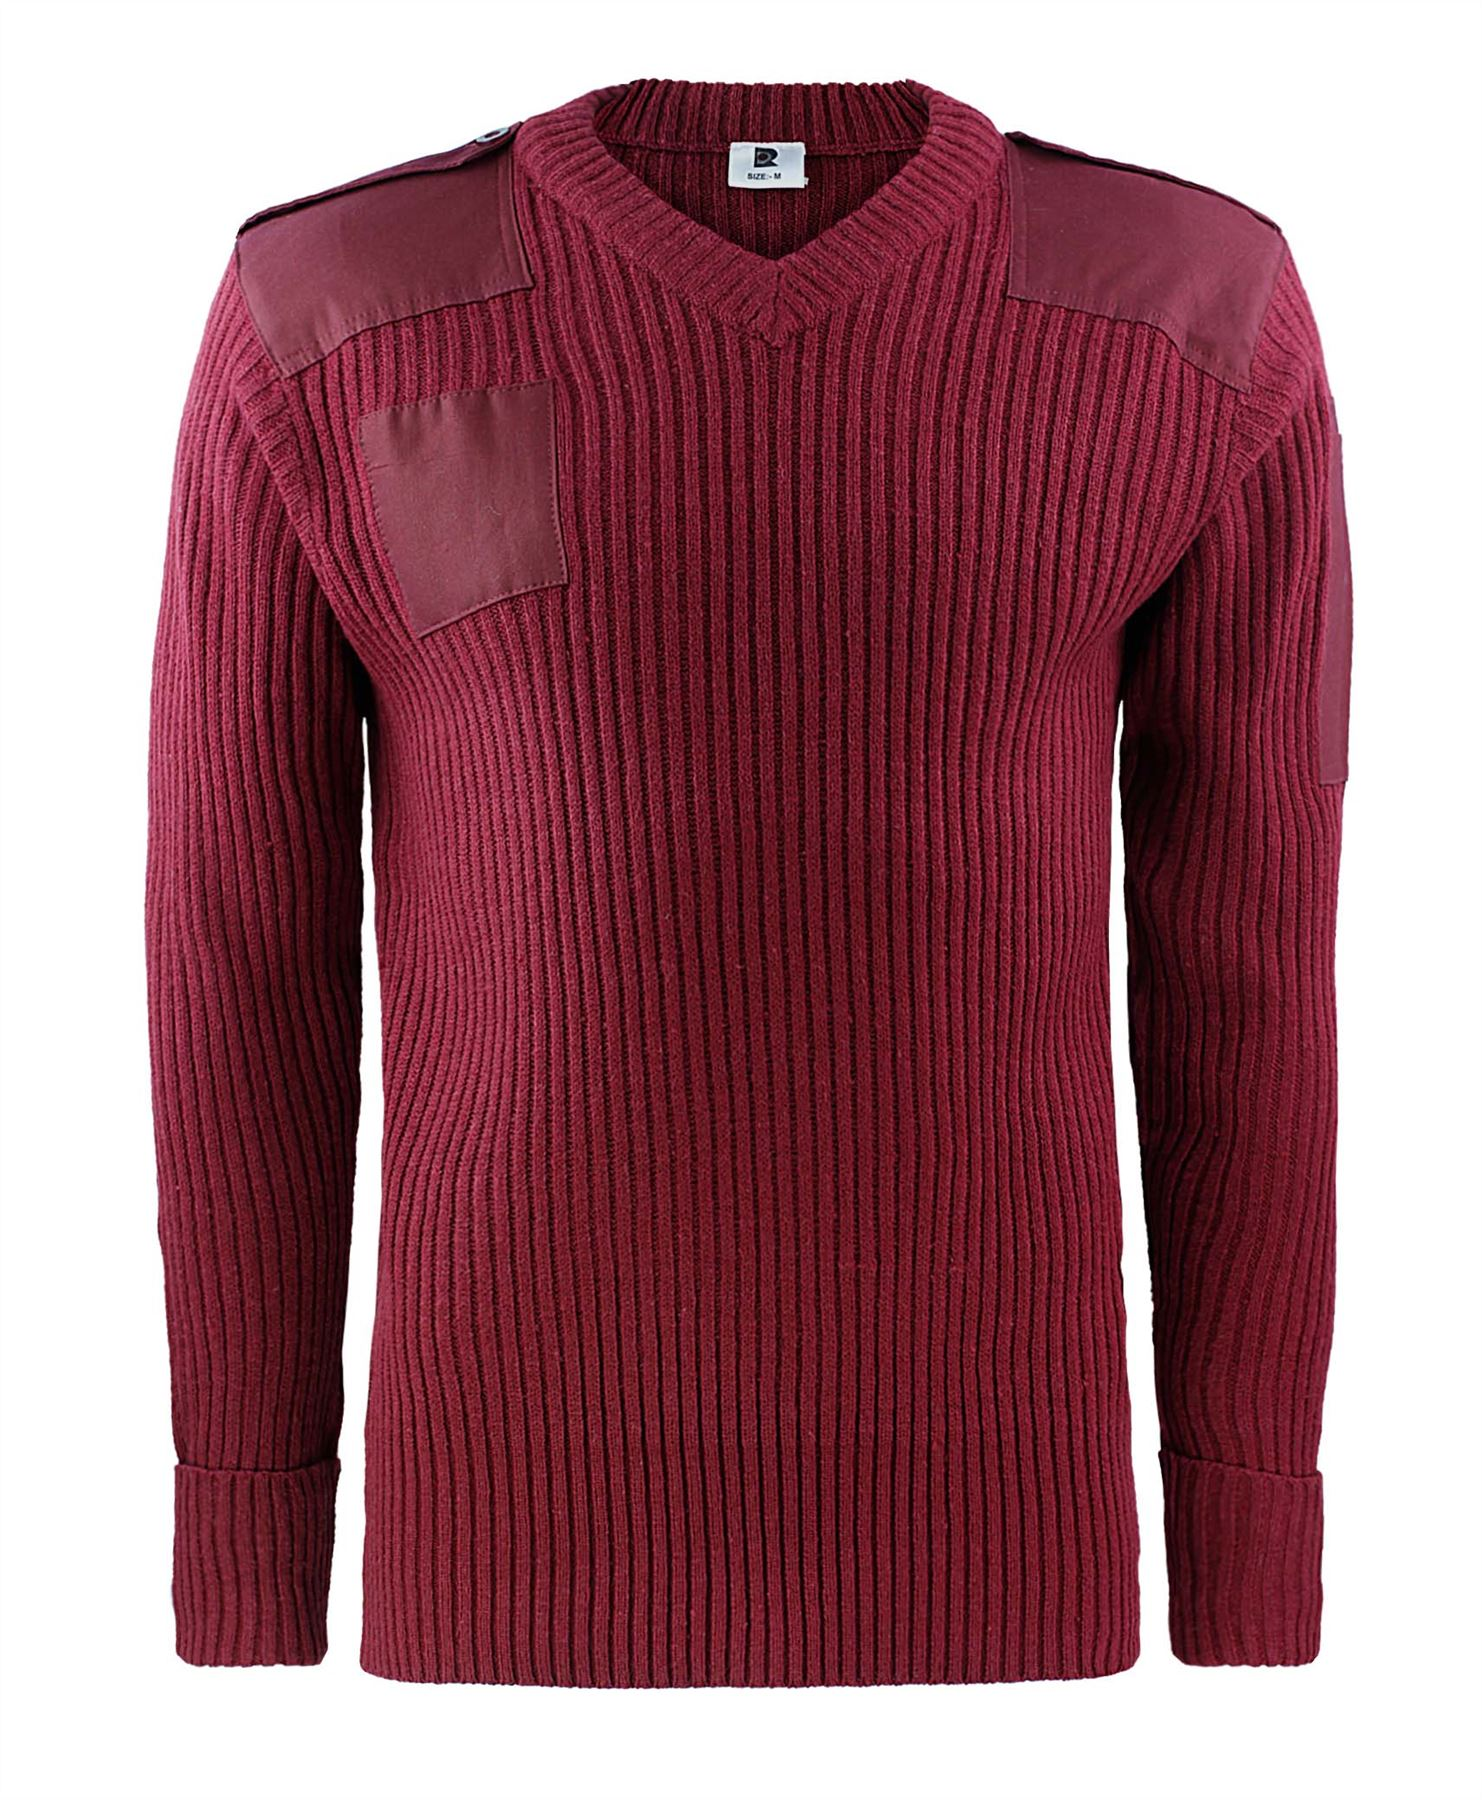 Shop for and buy mens knit tops online at Macy's. Find mens knit tops at Macy's.